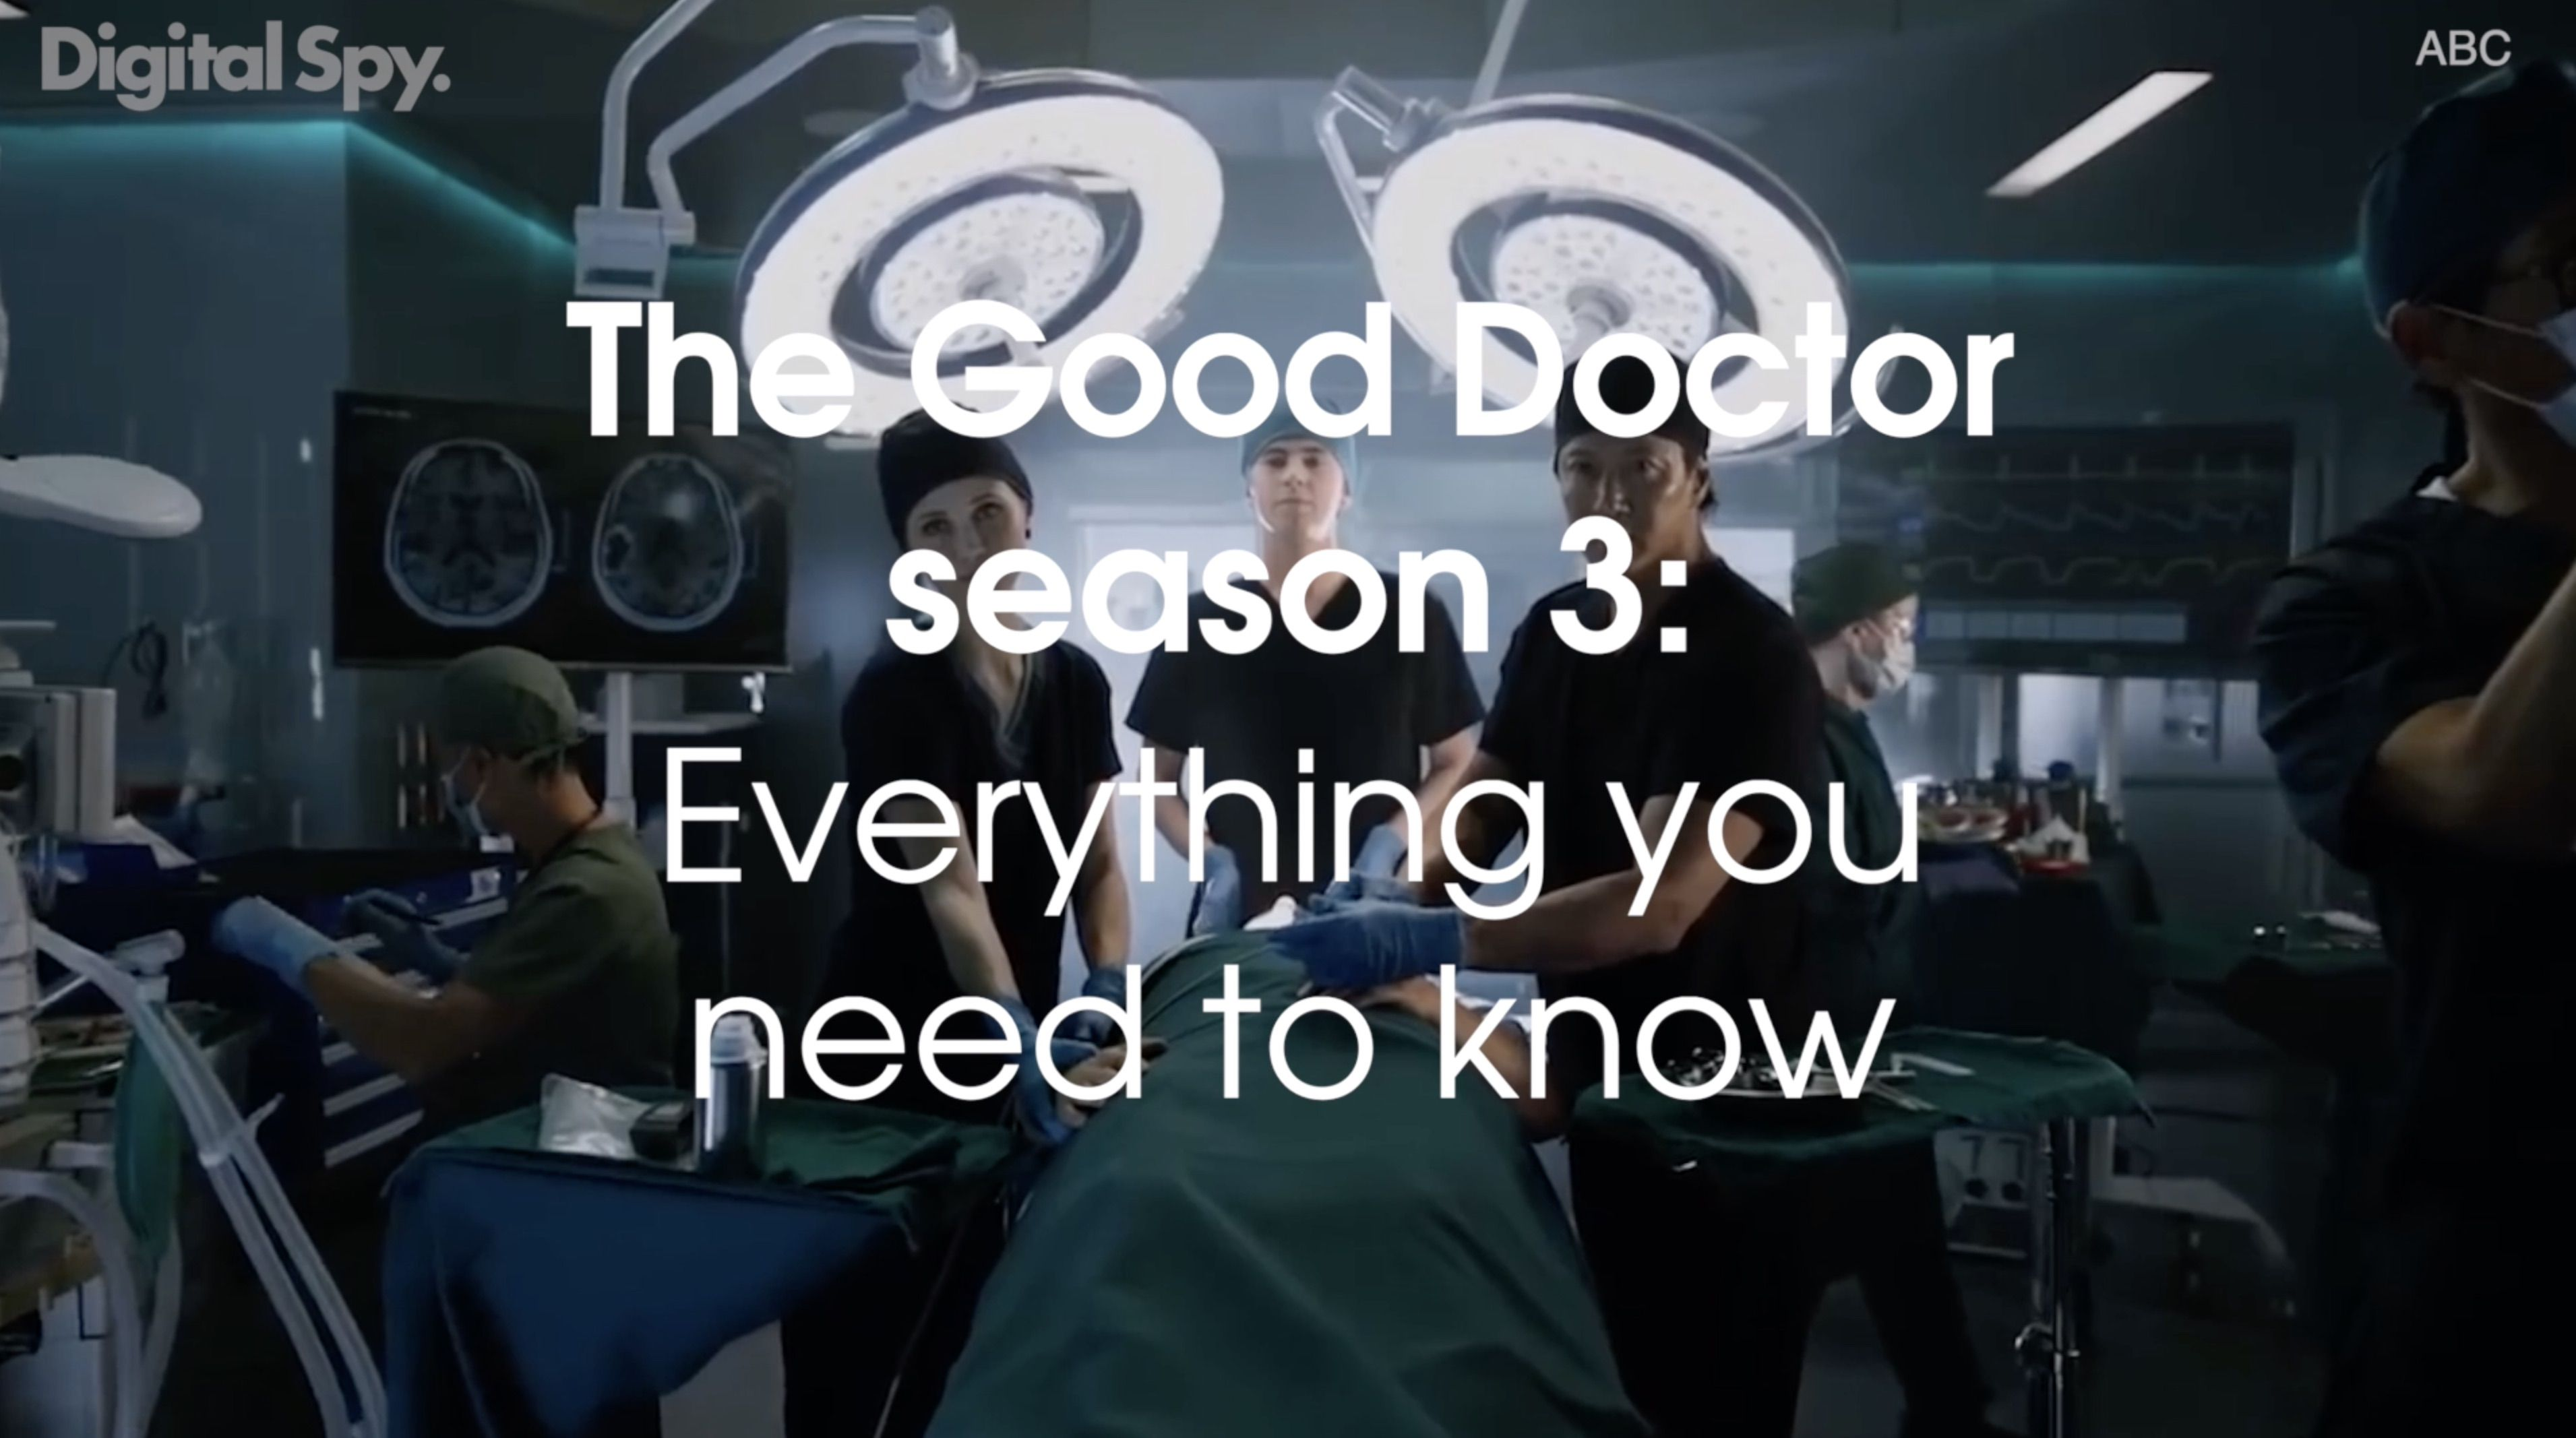 'The Good Doctor' Season 3 Storyline Is Going to Take an Interesting Turn